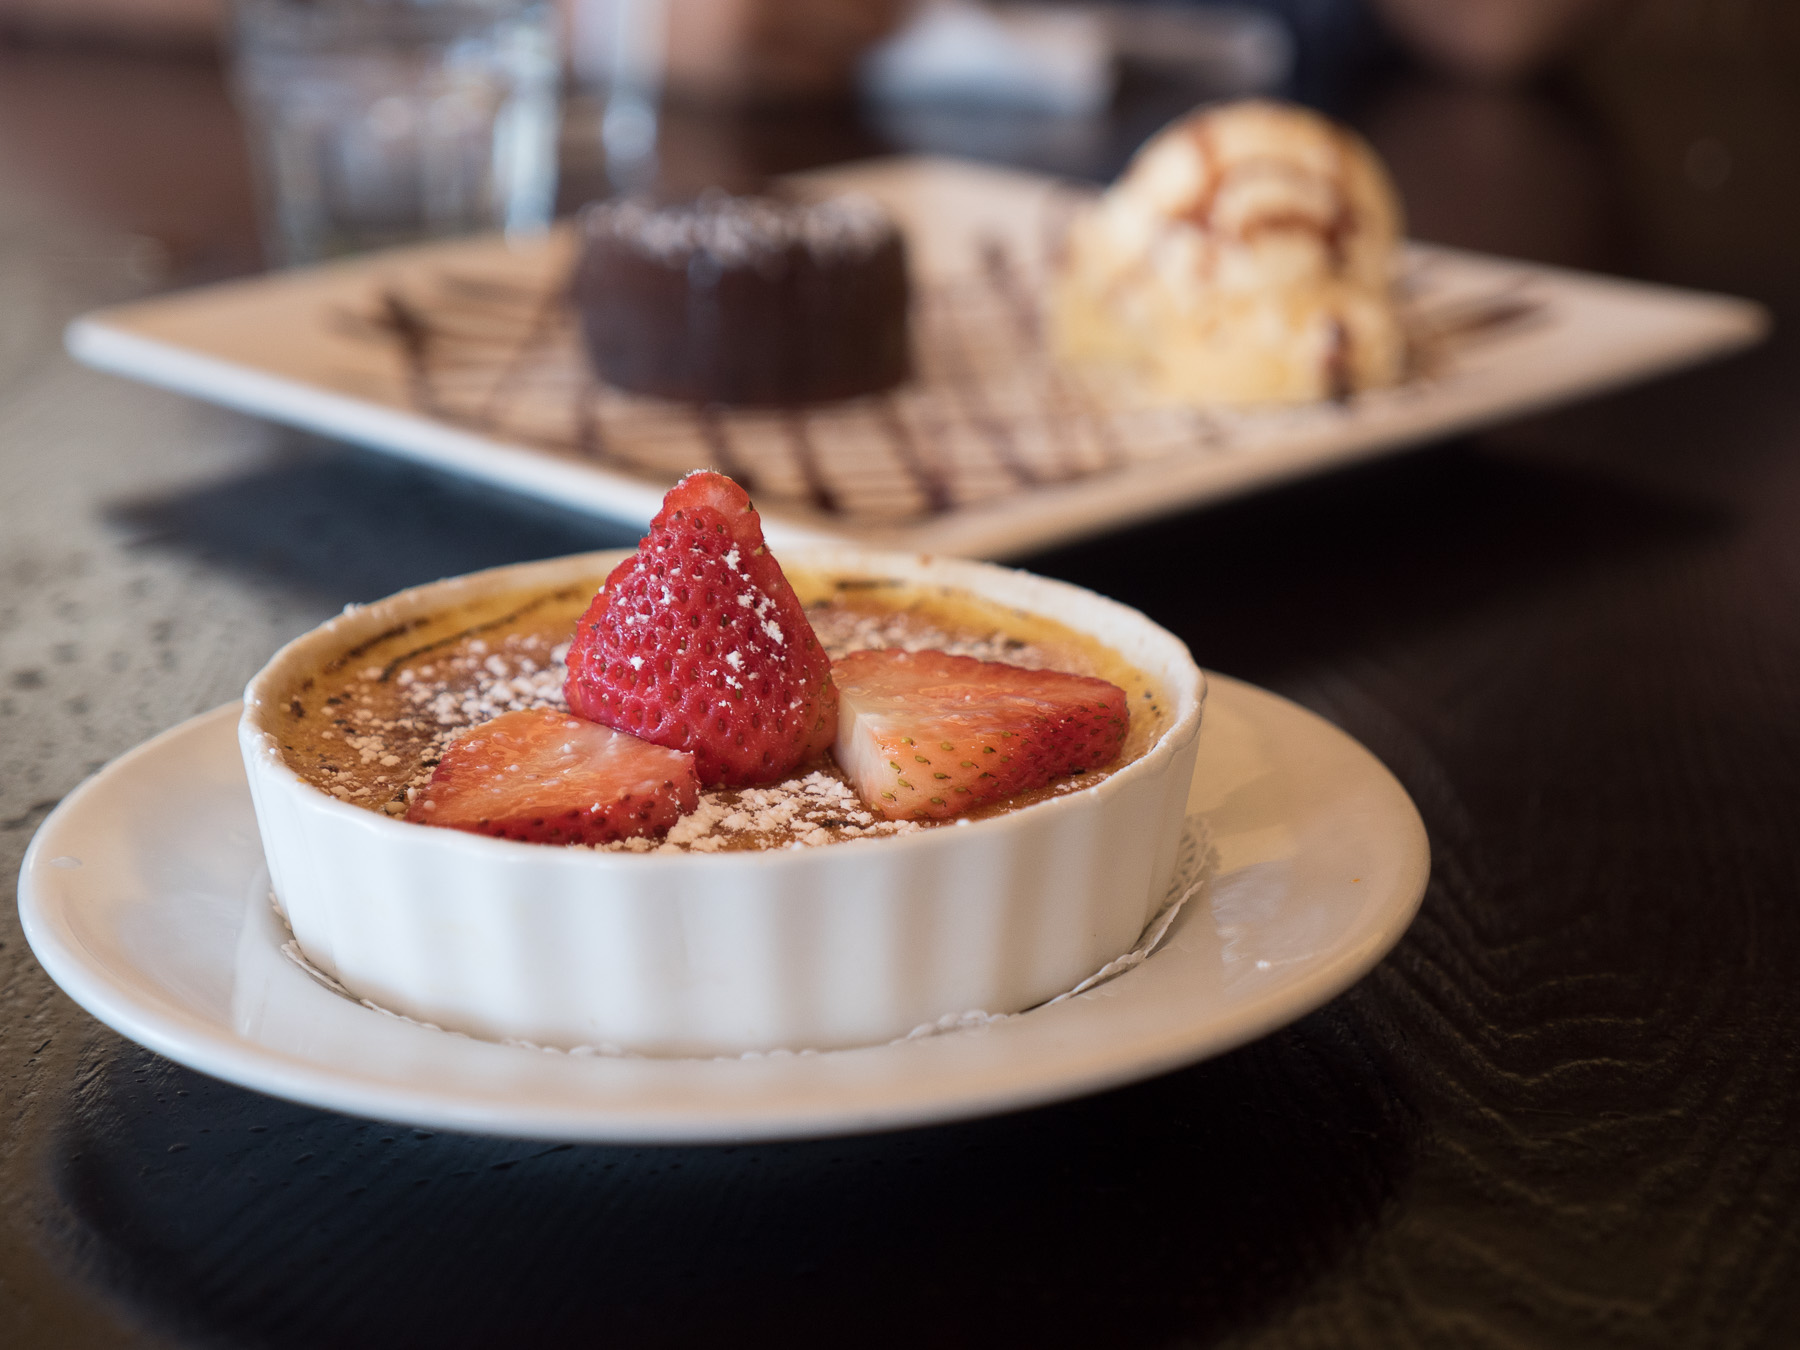 Creme Brulee + Chocolate Suffle. ISO 400, f/2.8, 1/100th